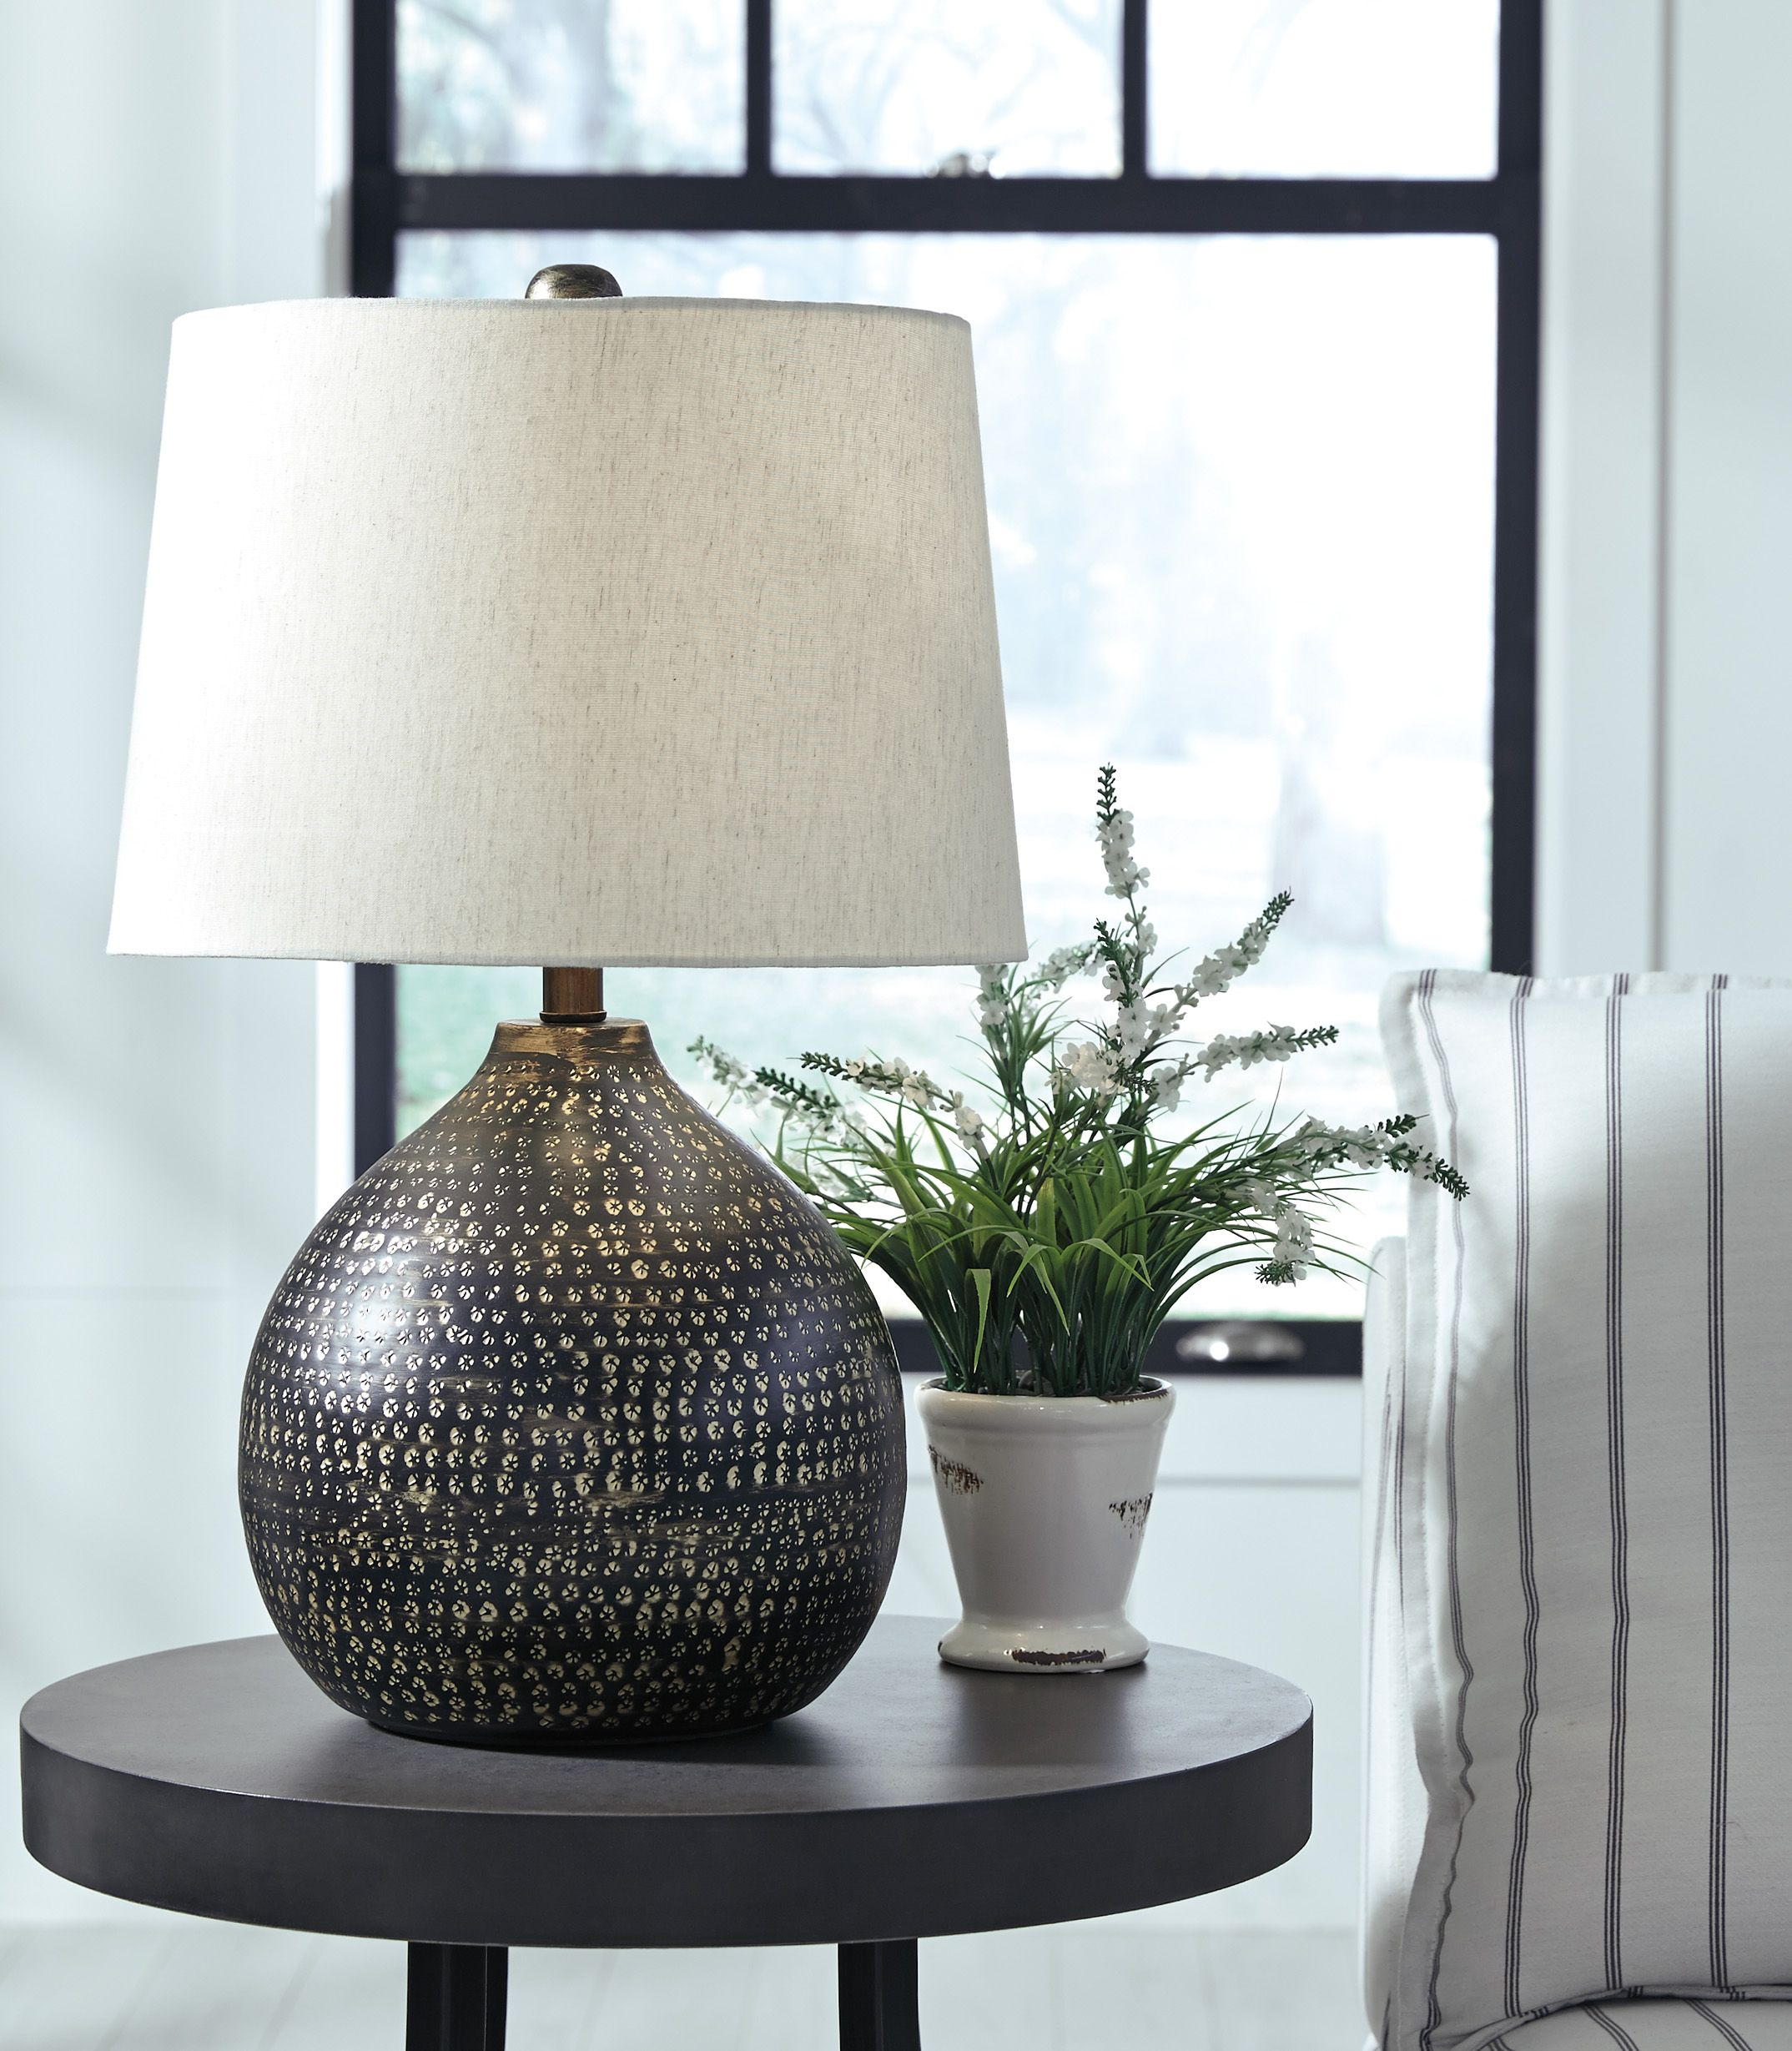 Lighting A Room Can Be The Last Thought But It Can Really Change Your Room See How To Light A Room Prop Metal Table Lamps Table Lamp Contemporary Table Lamps